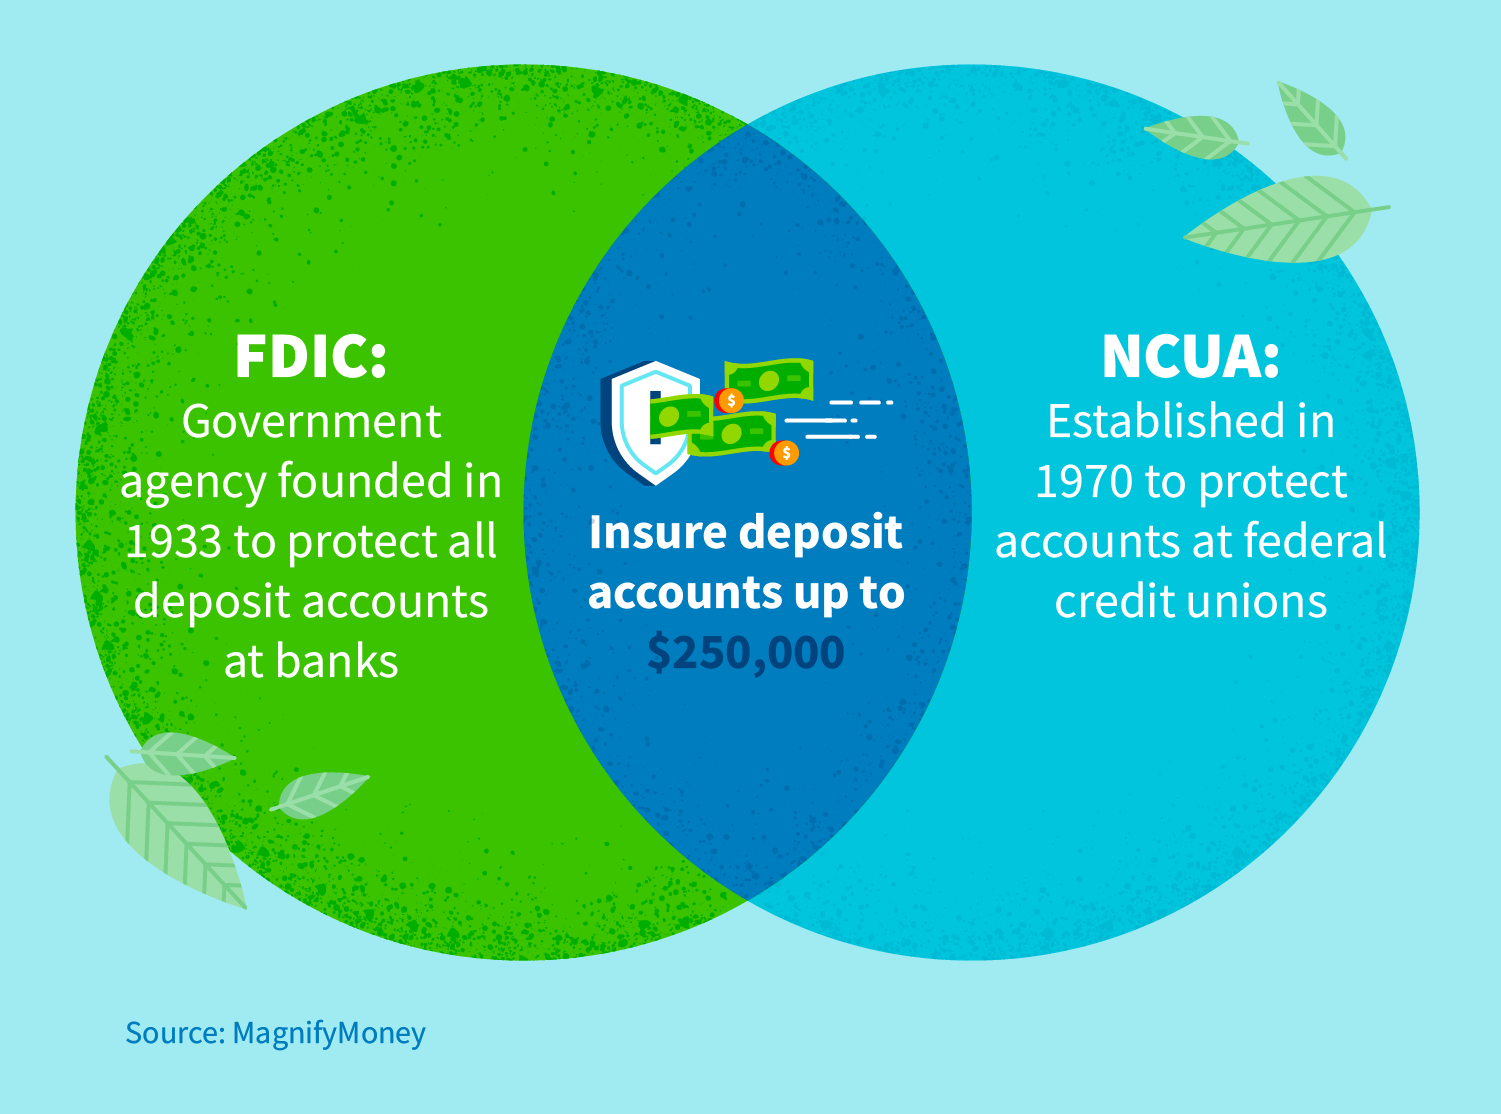 FDIC: Government agency founded in 1933 to protect all deposit accounts at banks. NCUA: Established in 1970 to protect accounts at federal credit unions.